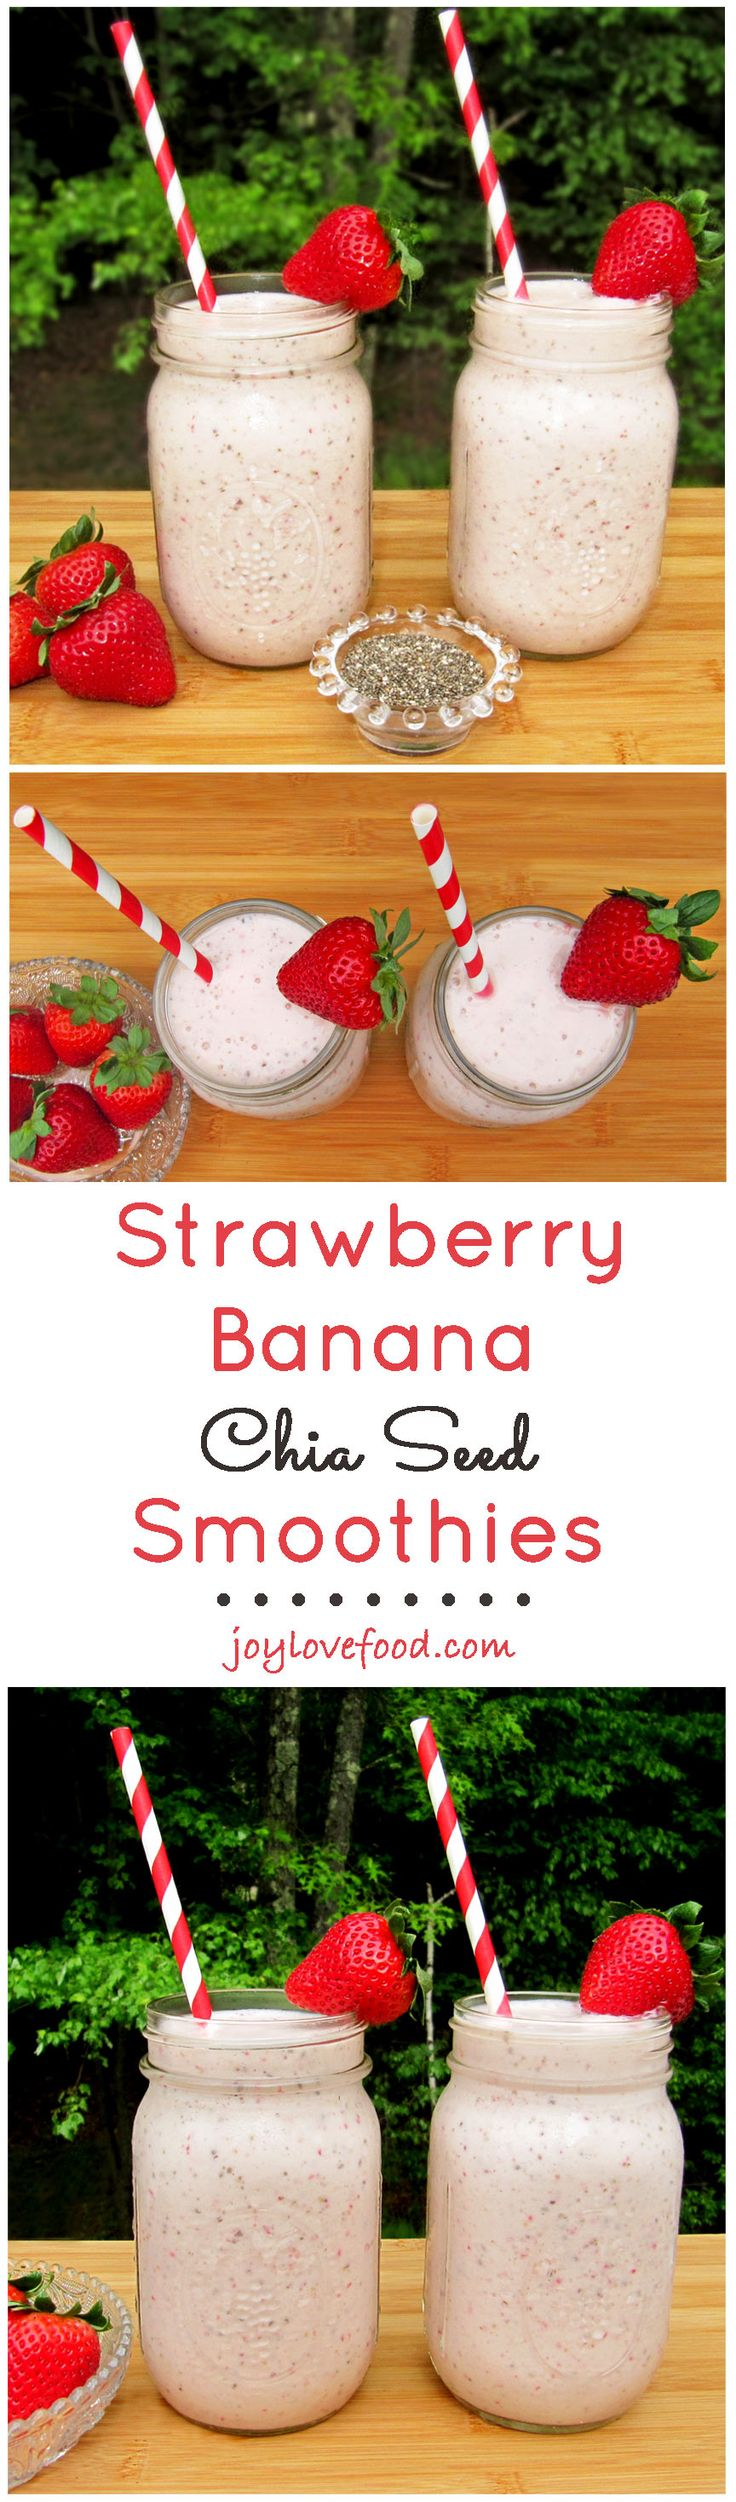 Strawberry Banana Chia Seed Smoothies